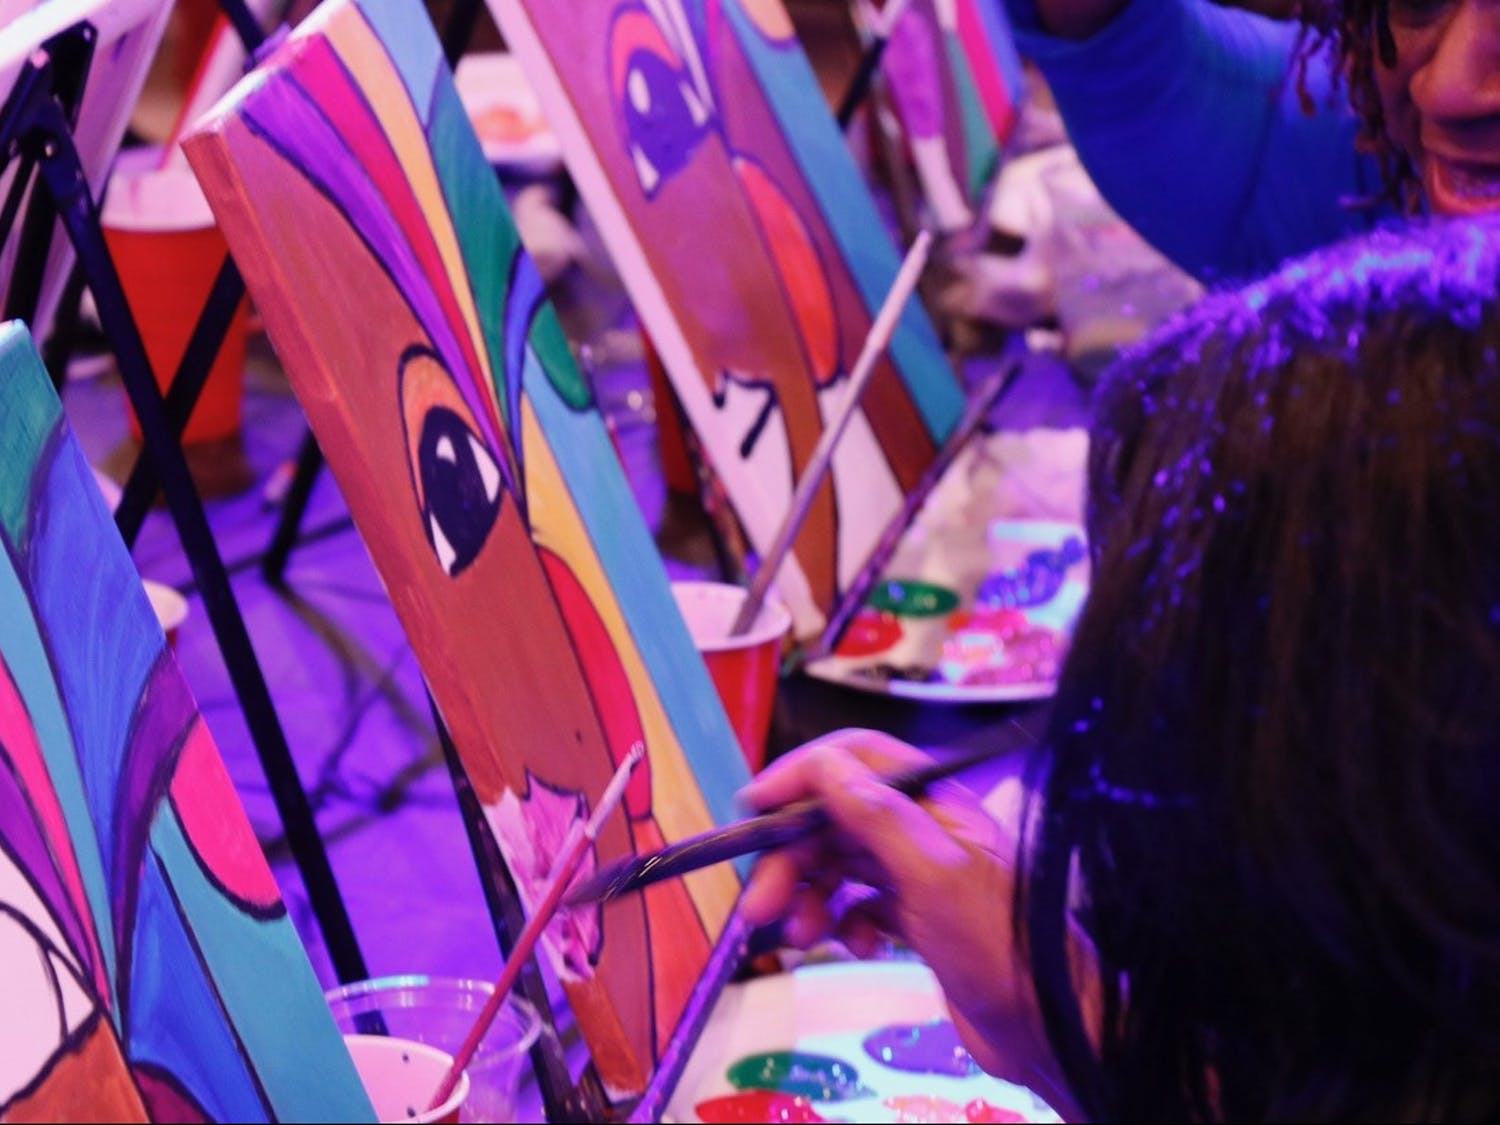 Attendees of The House Restaurant and Lounge's Paint n' Sip event on Jan. 25, 2020 can choose to paint a king, queen or an African mask template. Photo courtesy of Justin Q. Young.